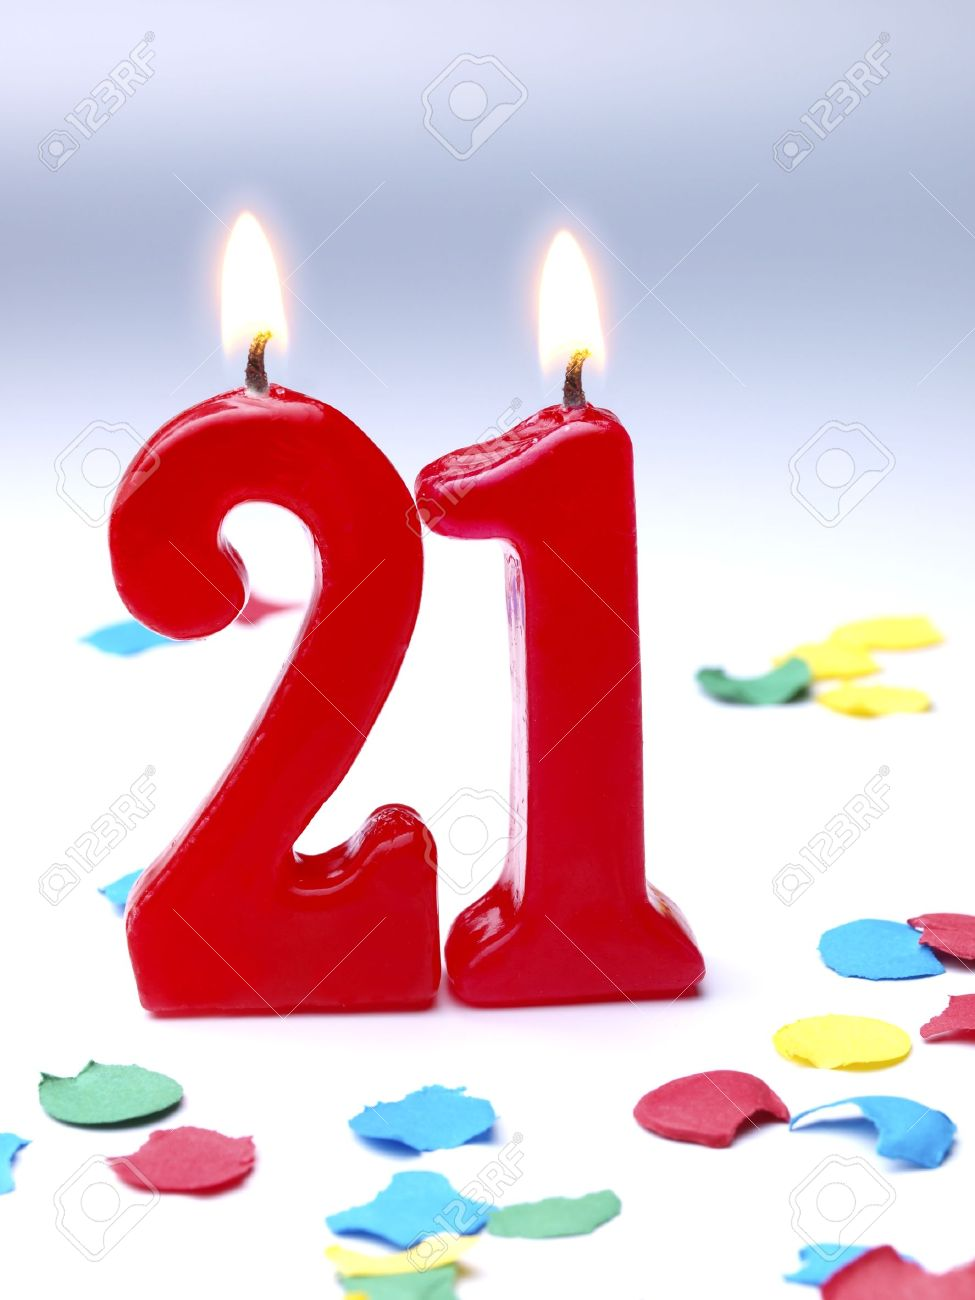 Birthday Candles Showing No 21 Stock Photo